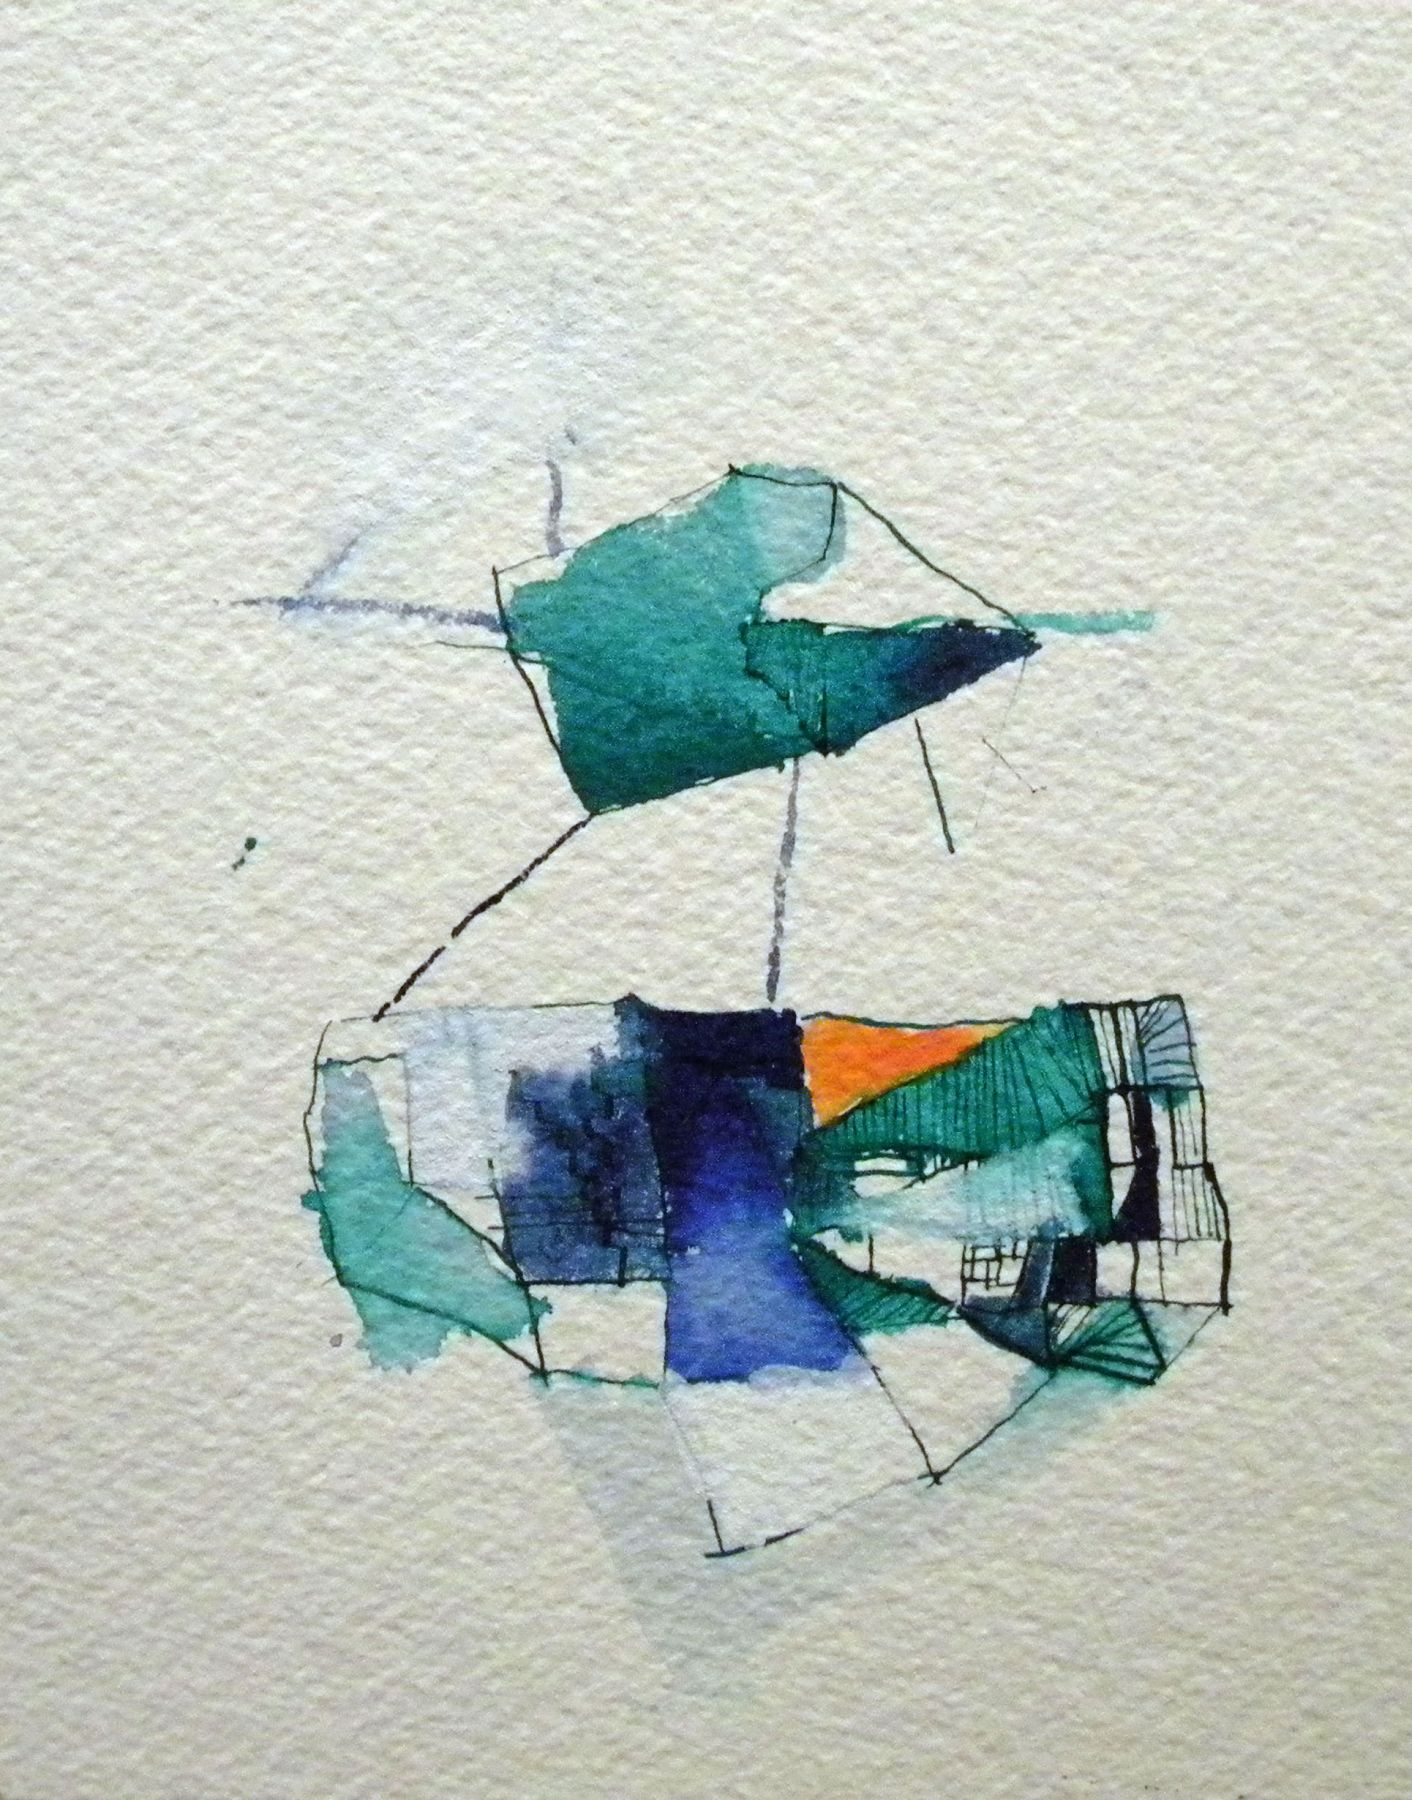 Louisa Waber  Untitled, May 2010  Watercolor on paper  5 3/4 x 5 7/8 inches